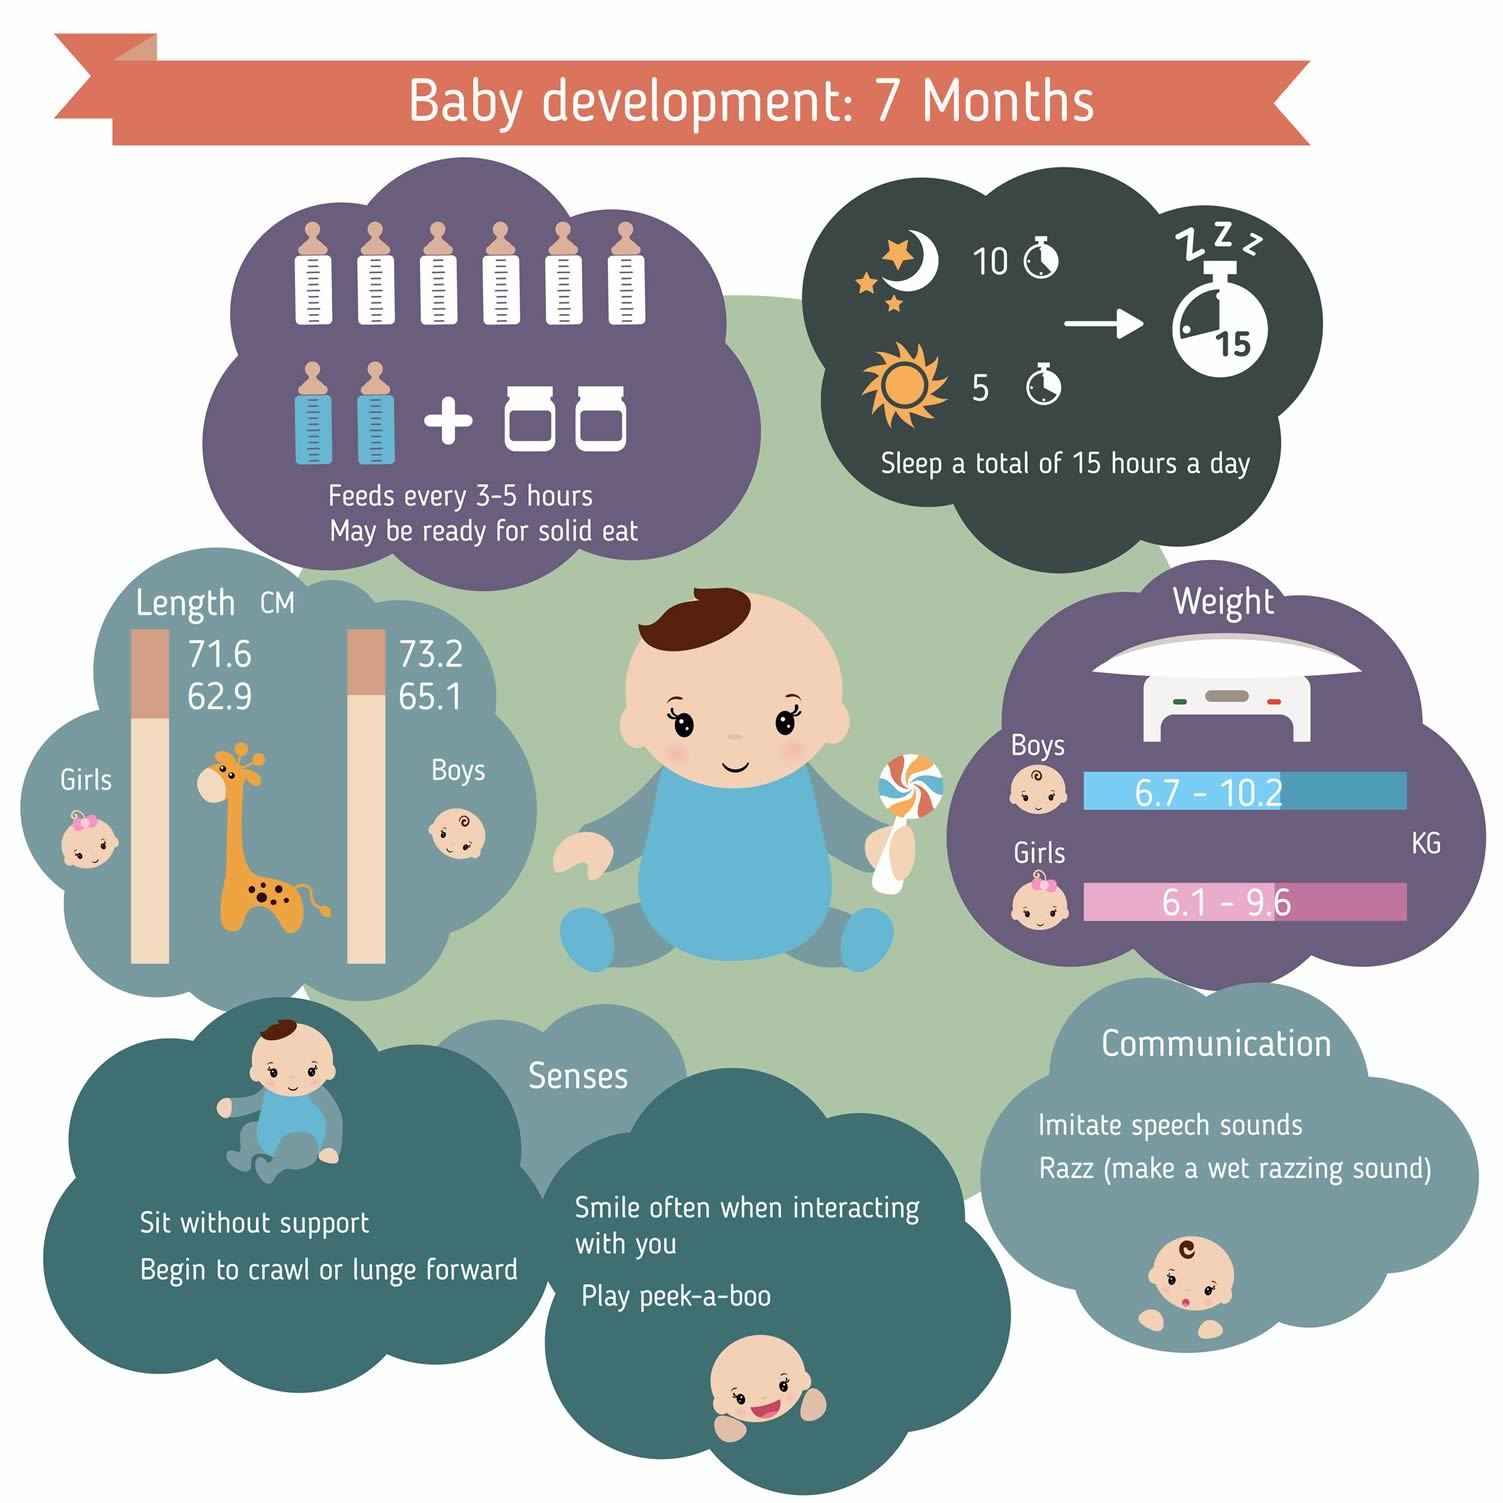 7-month-infant-care-guide